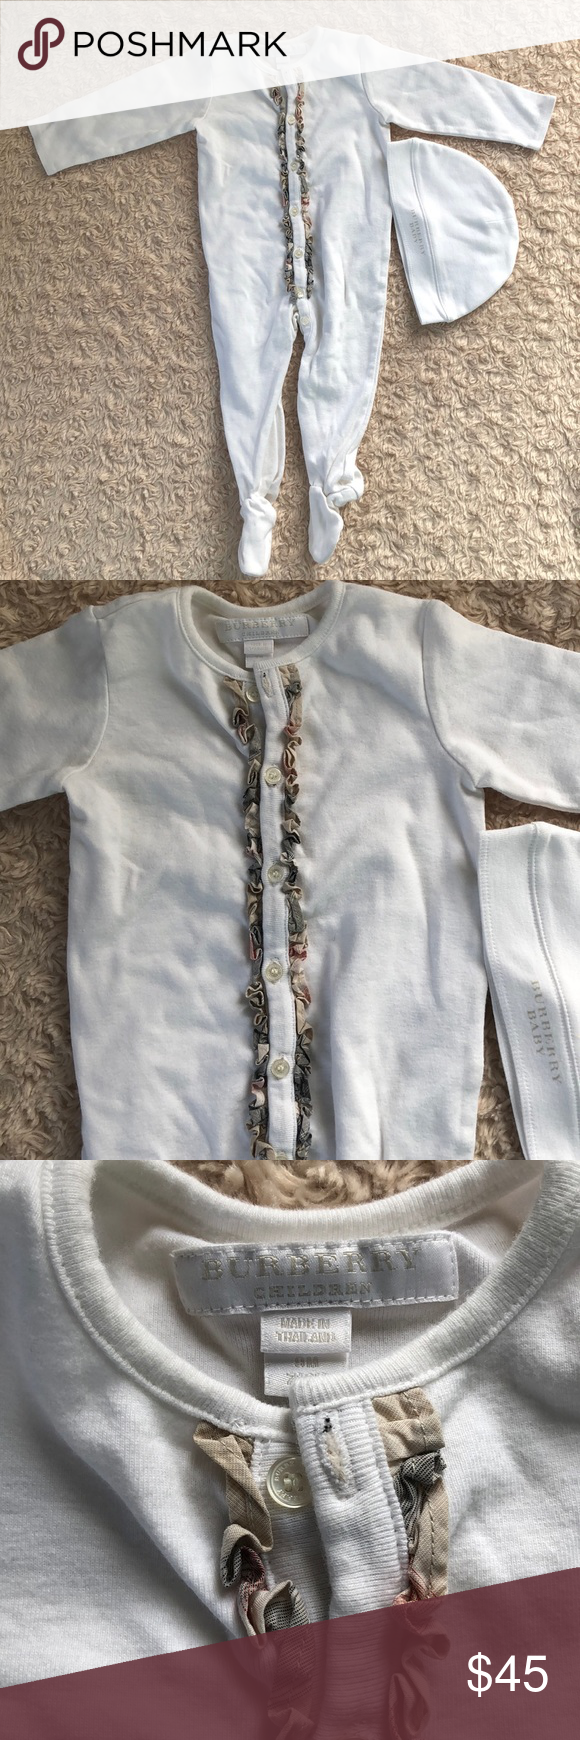 7c0d7ed9ad4 Burberry Baby Footed One Piece Set